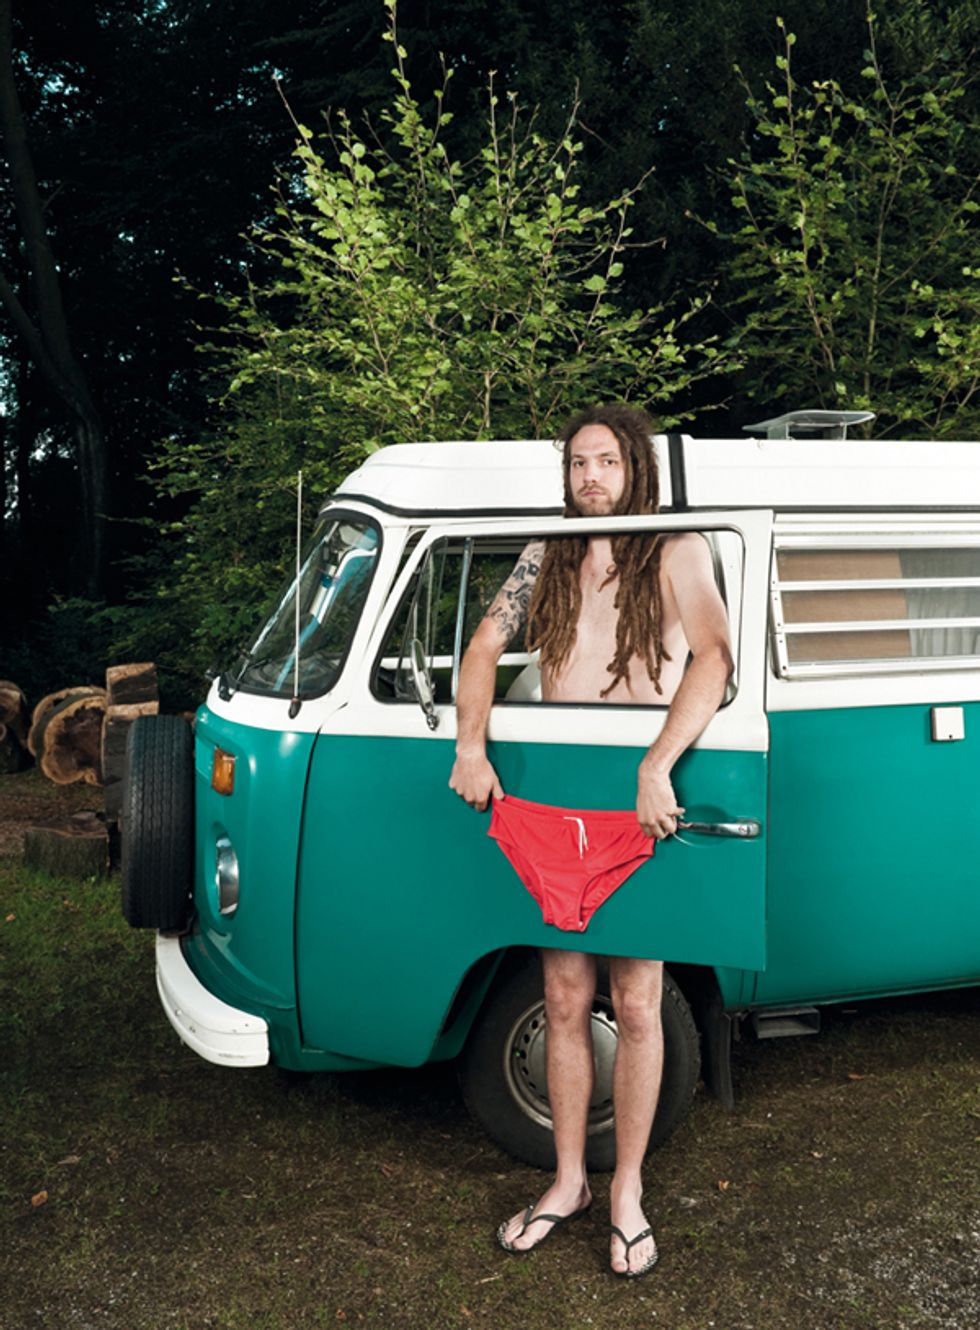 This Calendar of Guys in Funny Underwear Next To Classic Cars Is All The Rage In Germany